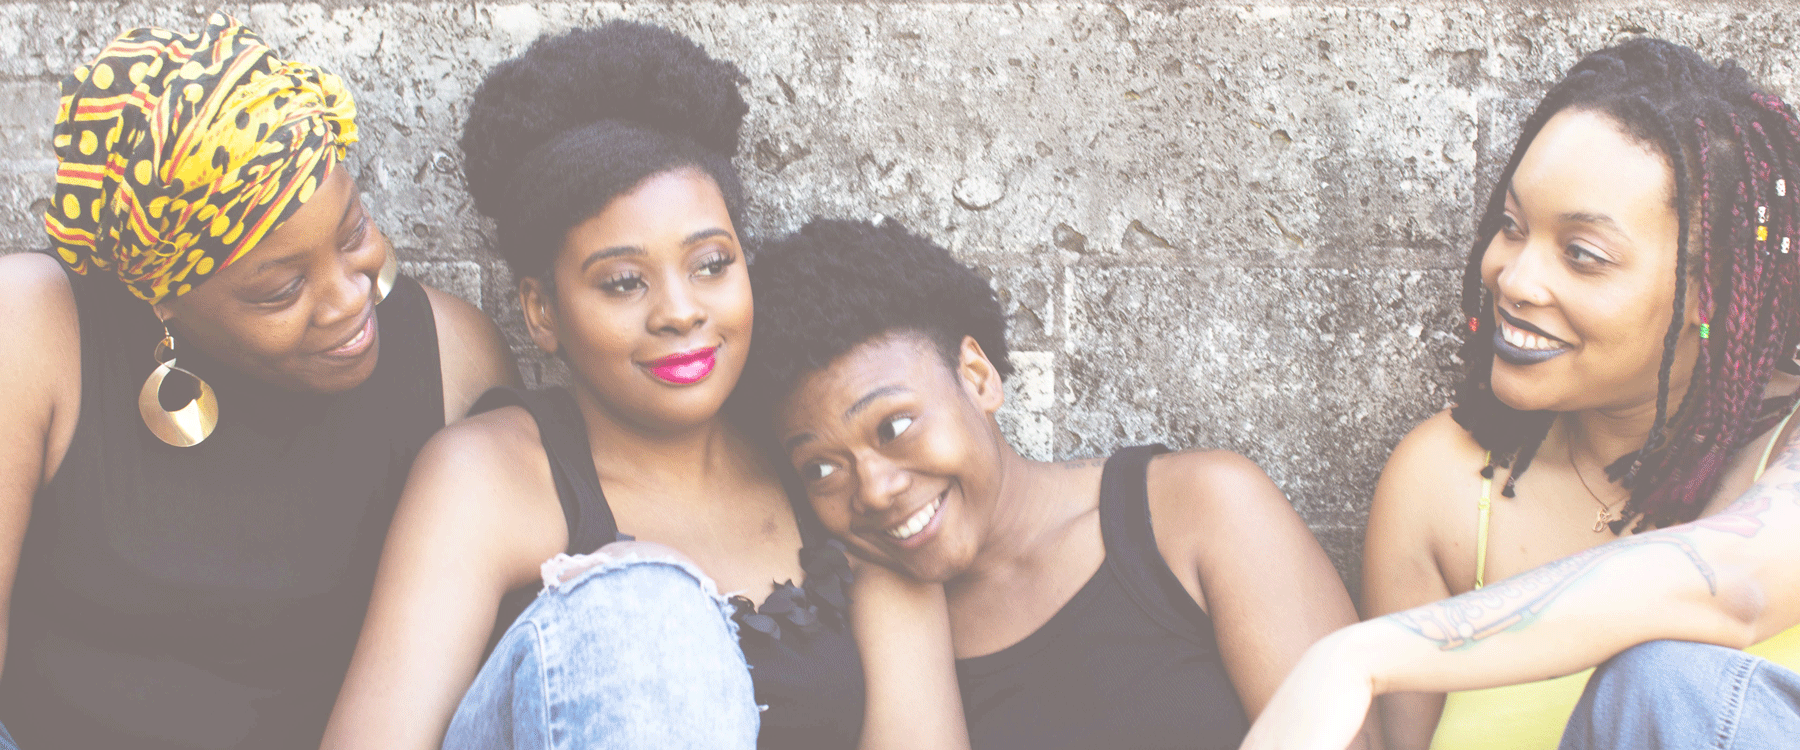 the four actors of black girl love: an adaptation project